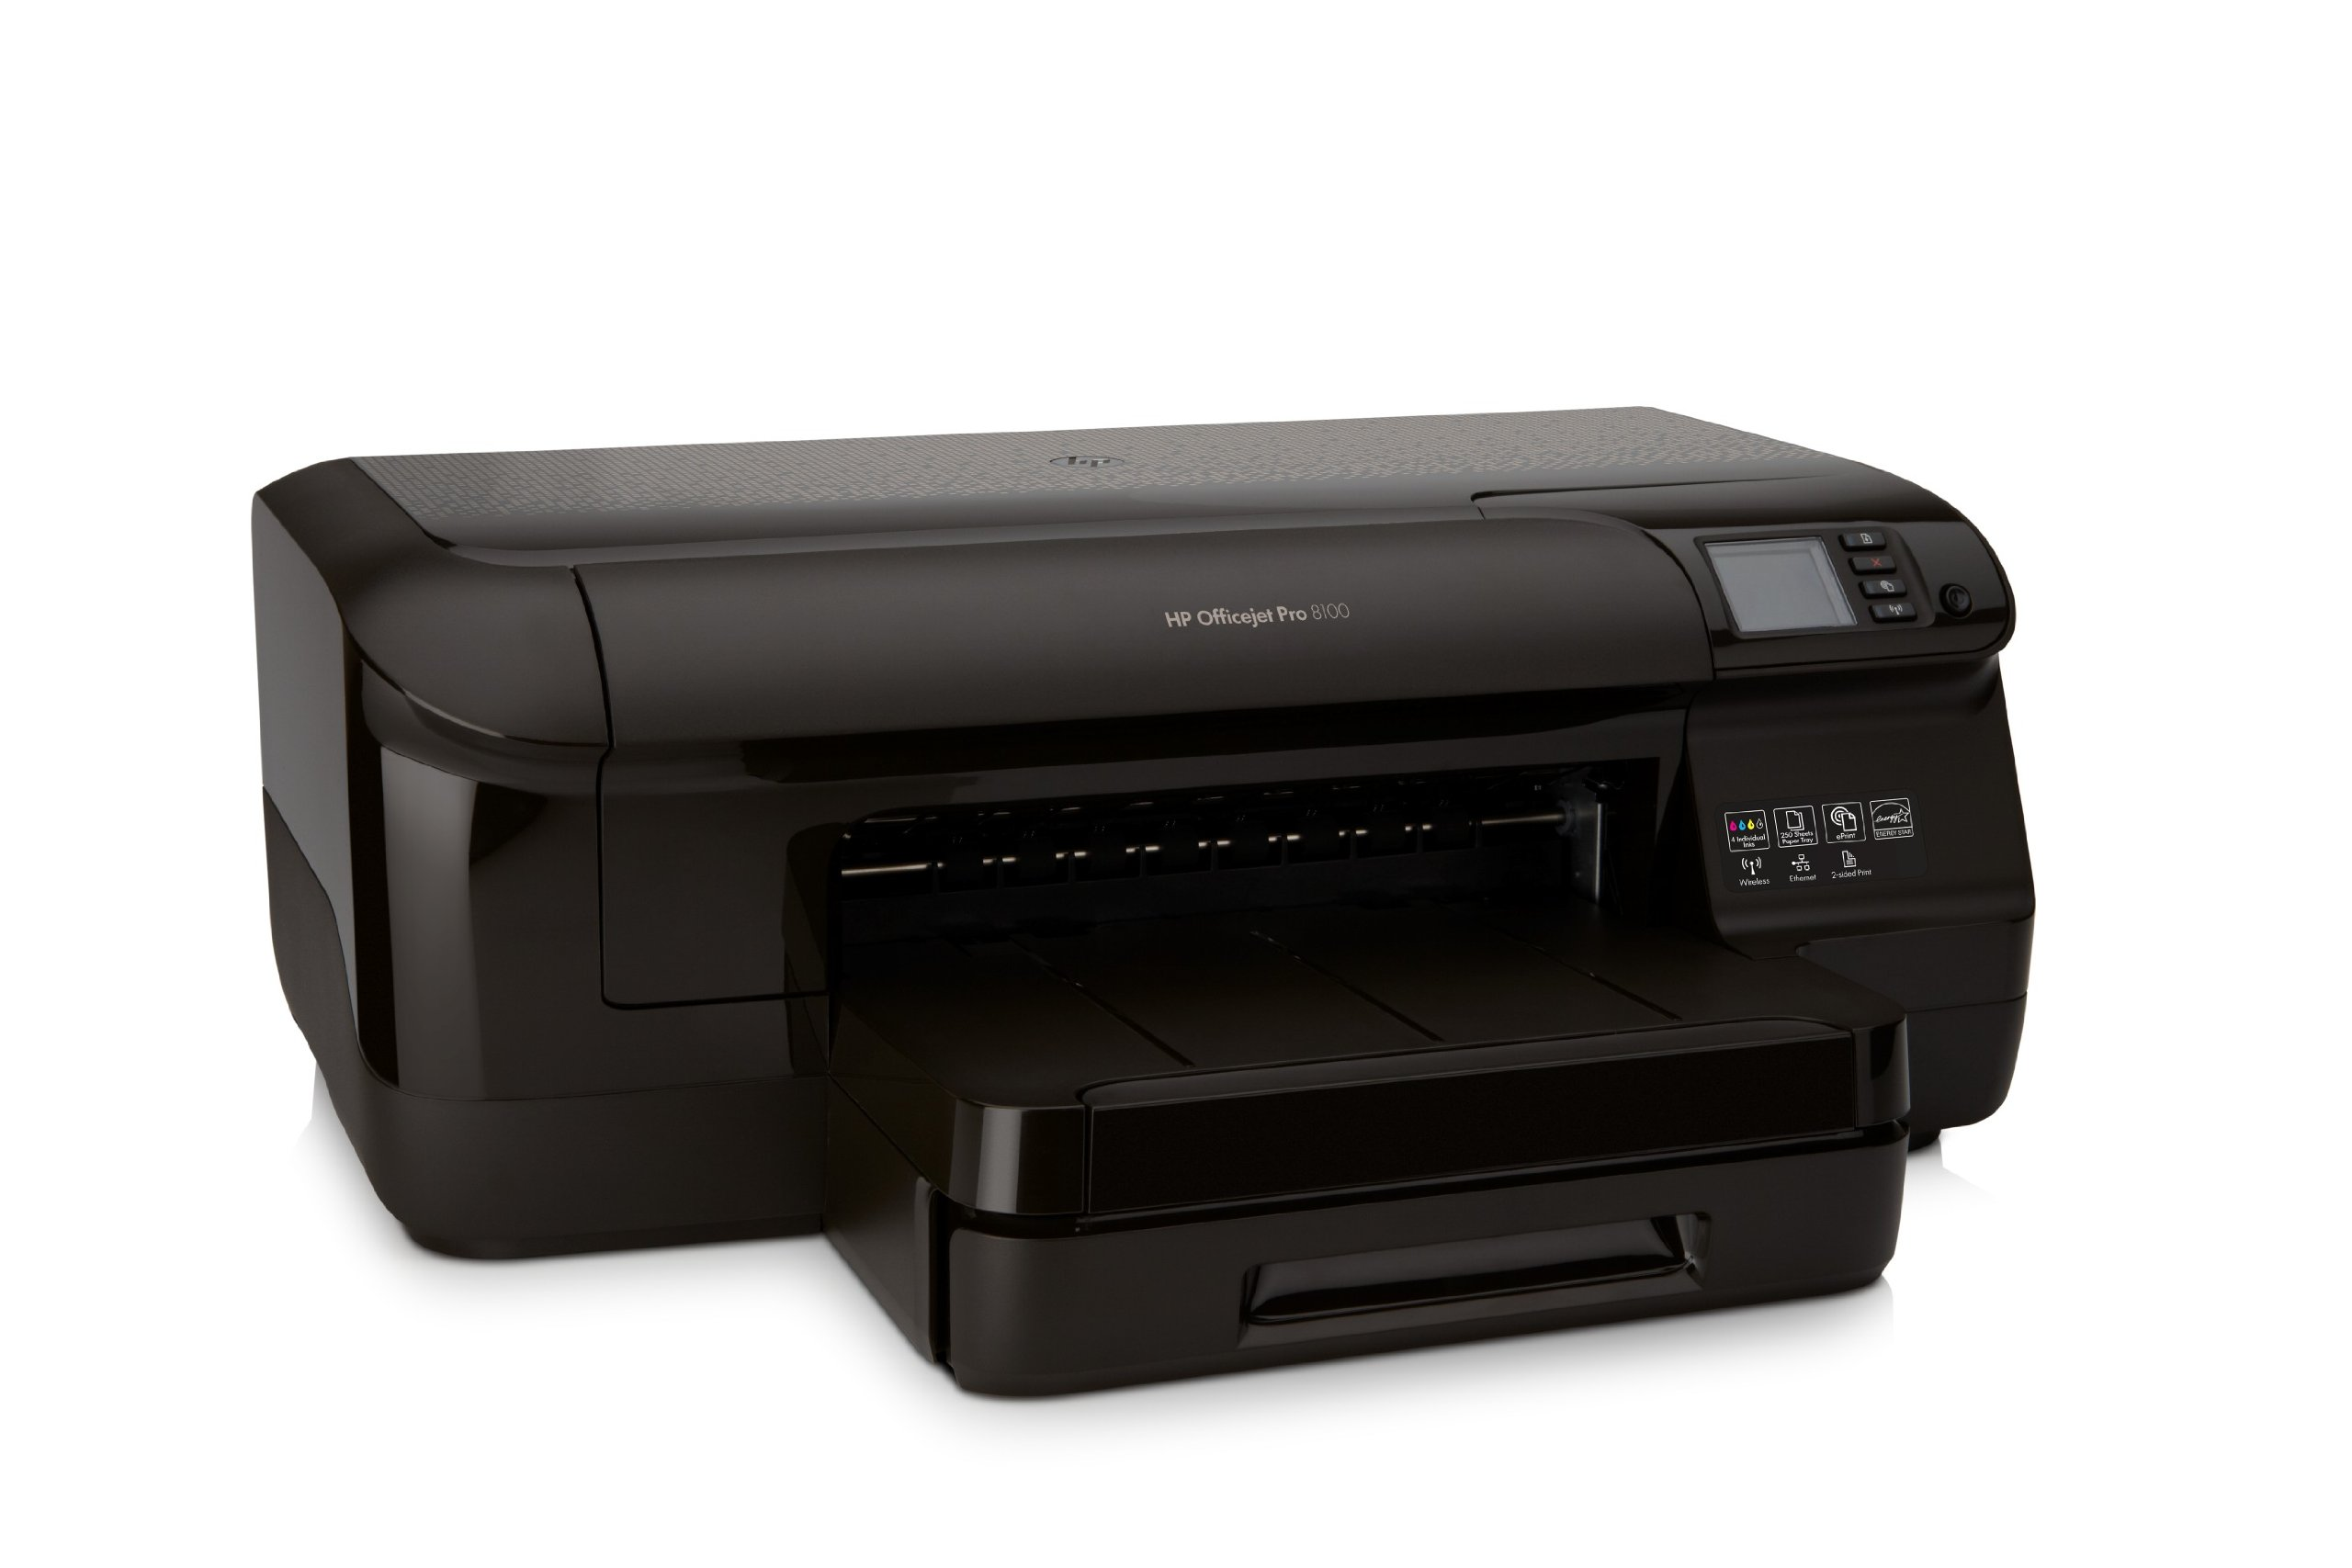 HP OfficeJet Pro 8100 Wireless Photo Printer with Mobile Printing (CM752A)